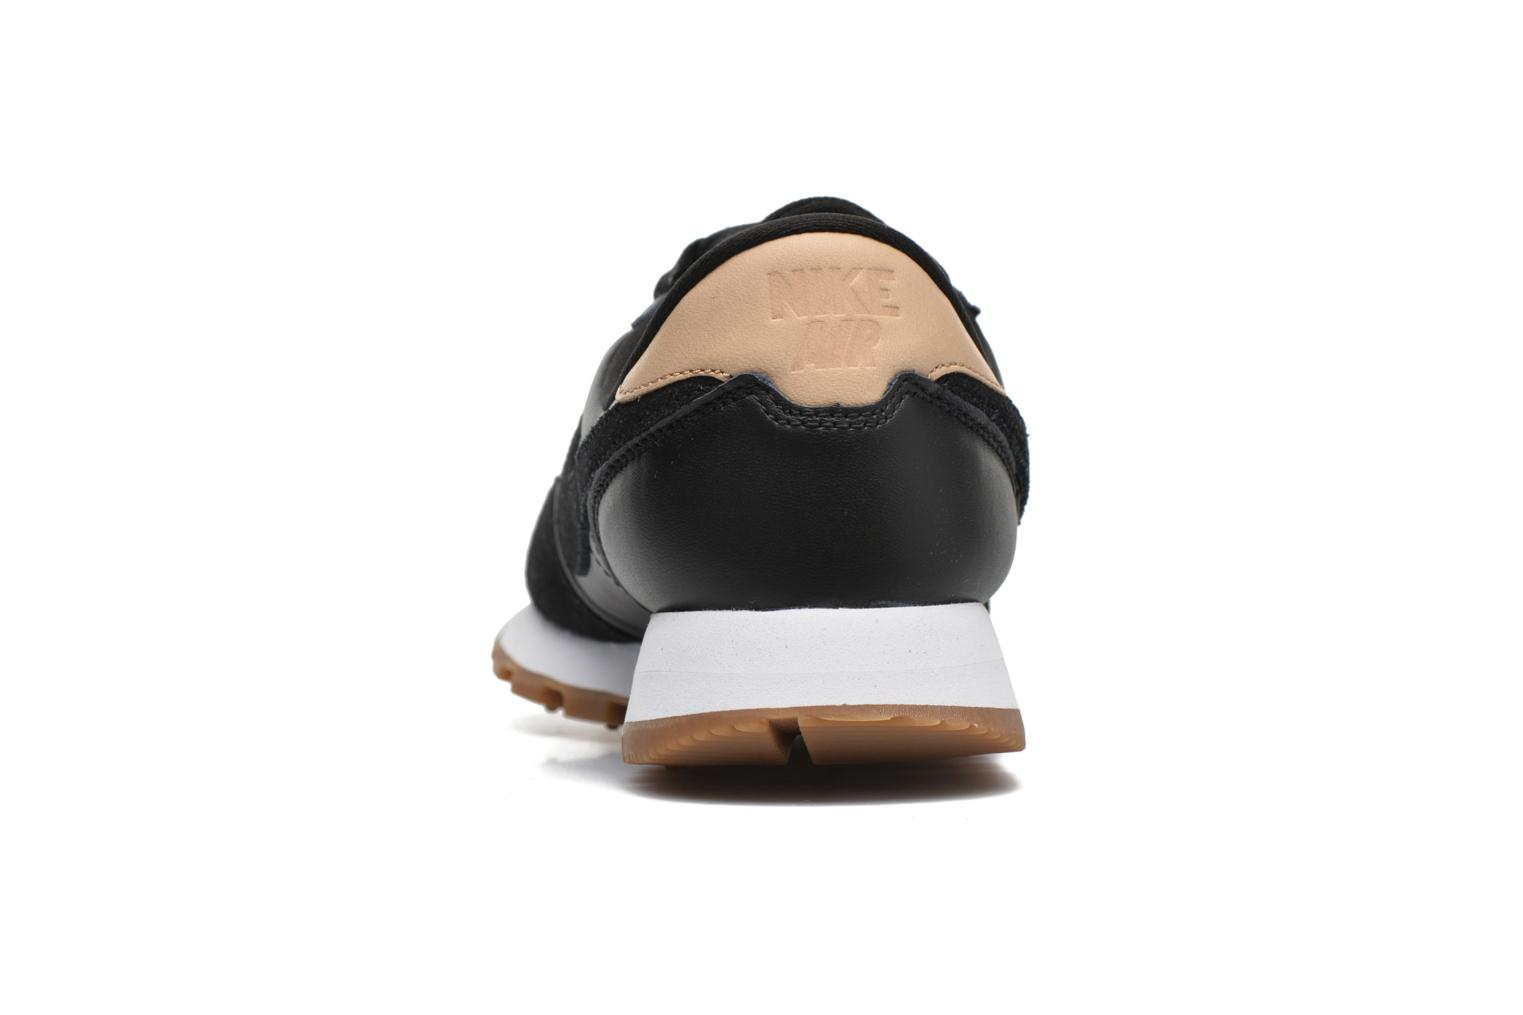 Nike Air Pegasus 83 Prm Black/Black-White-Vachetta Tan